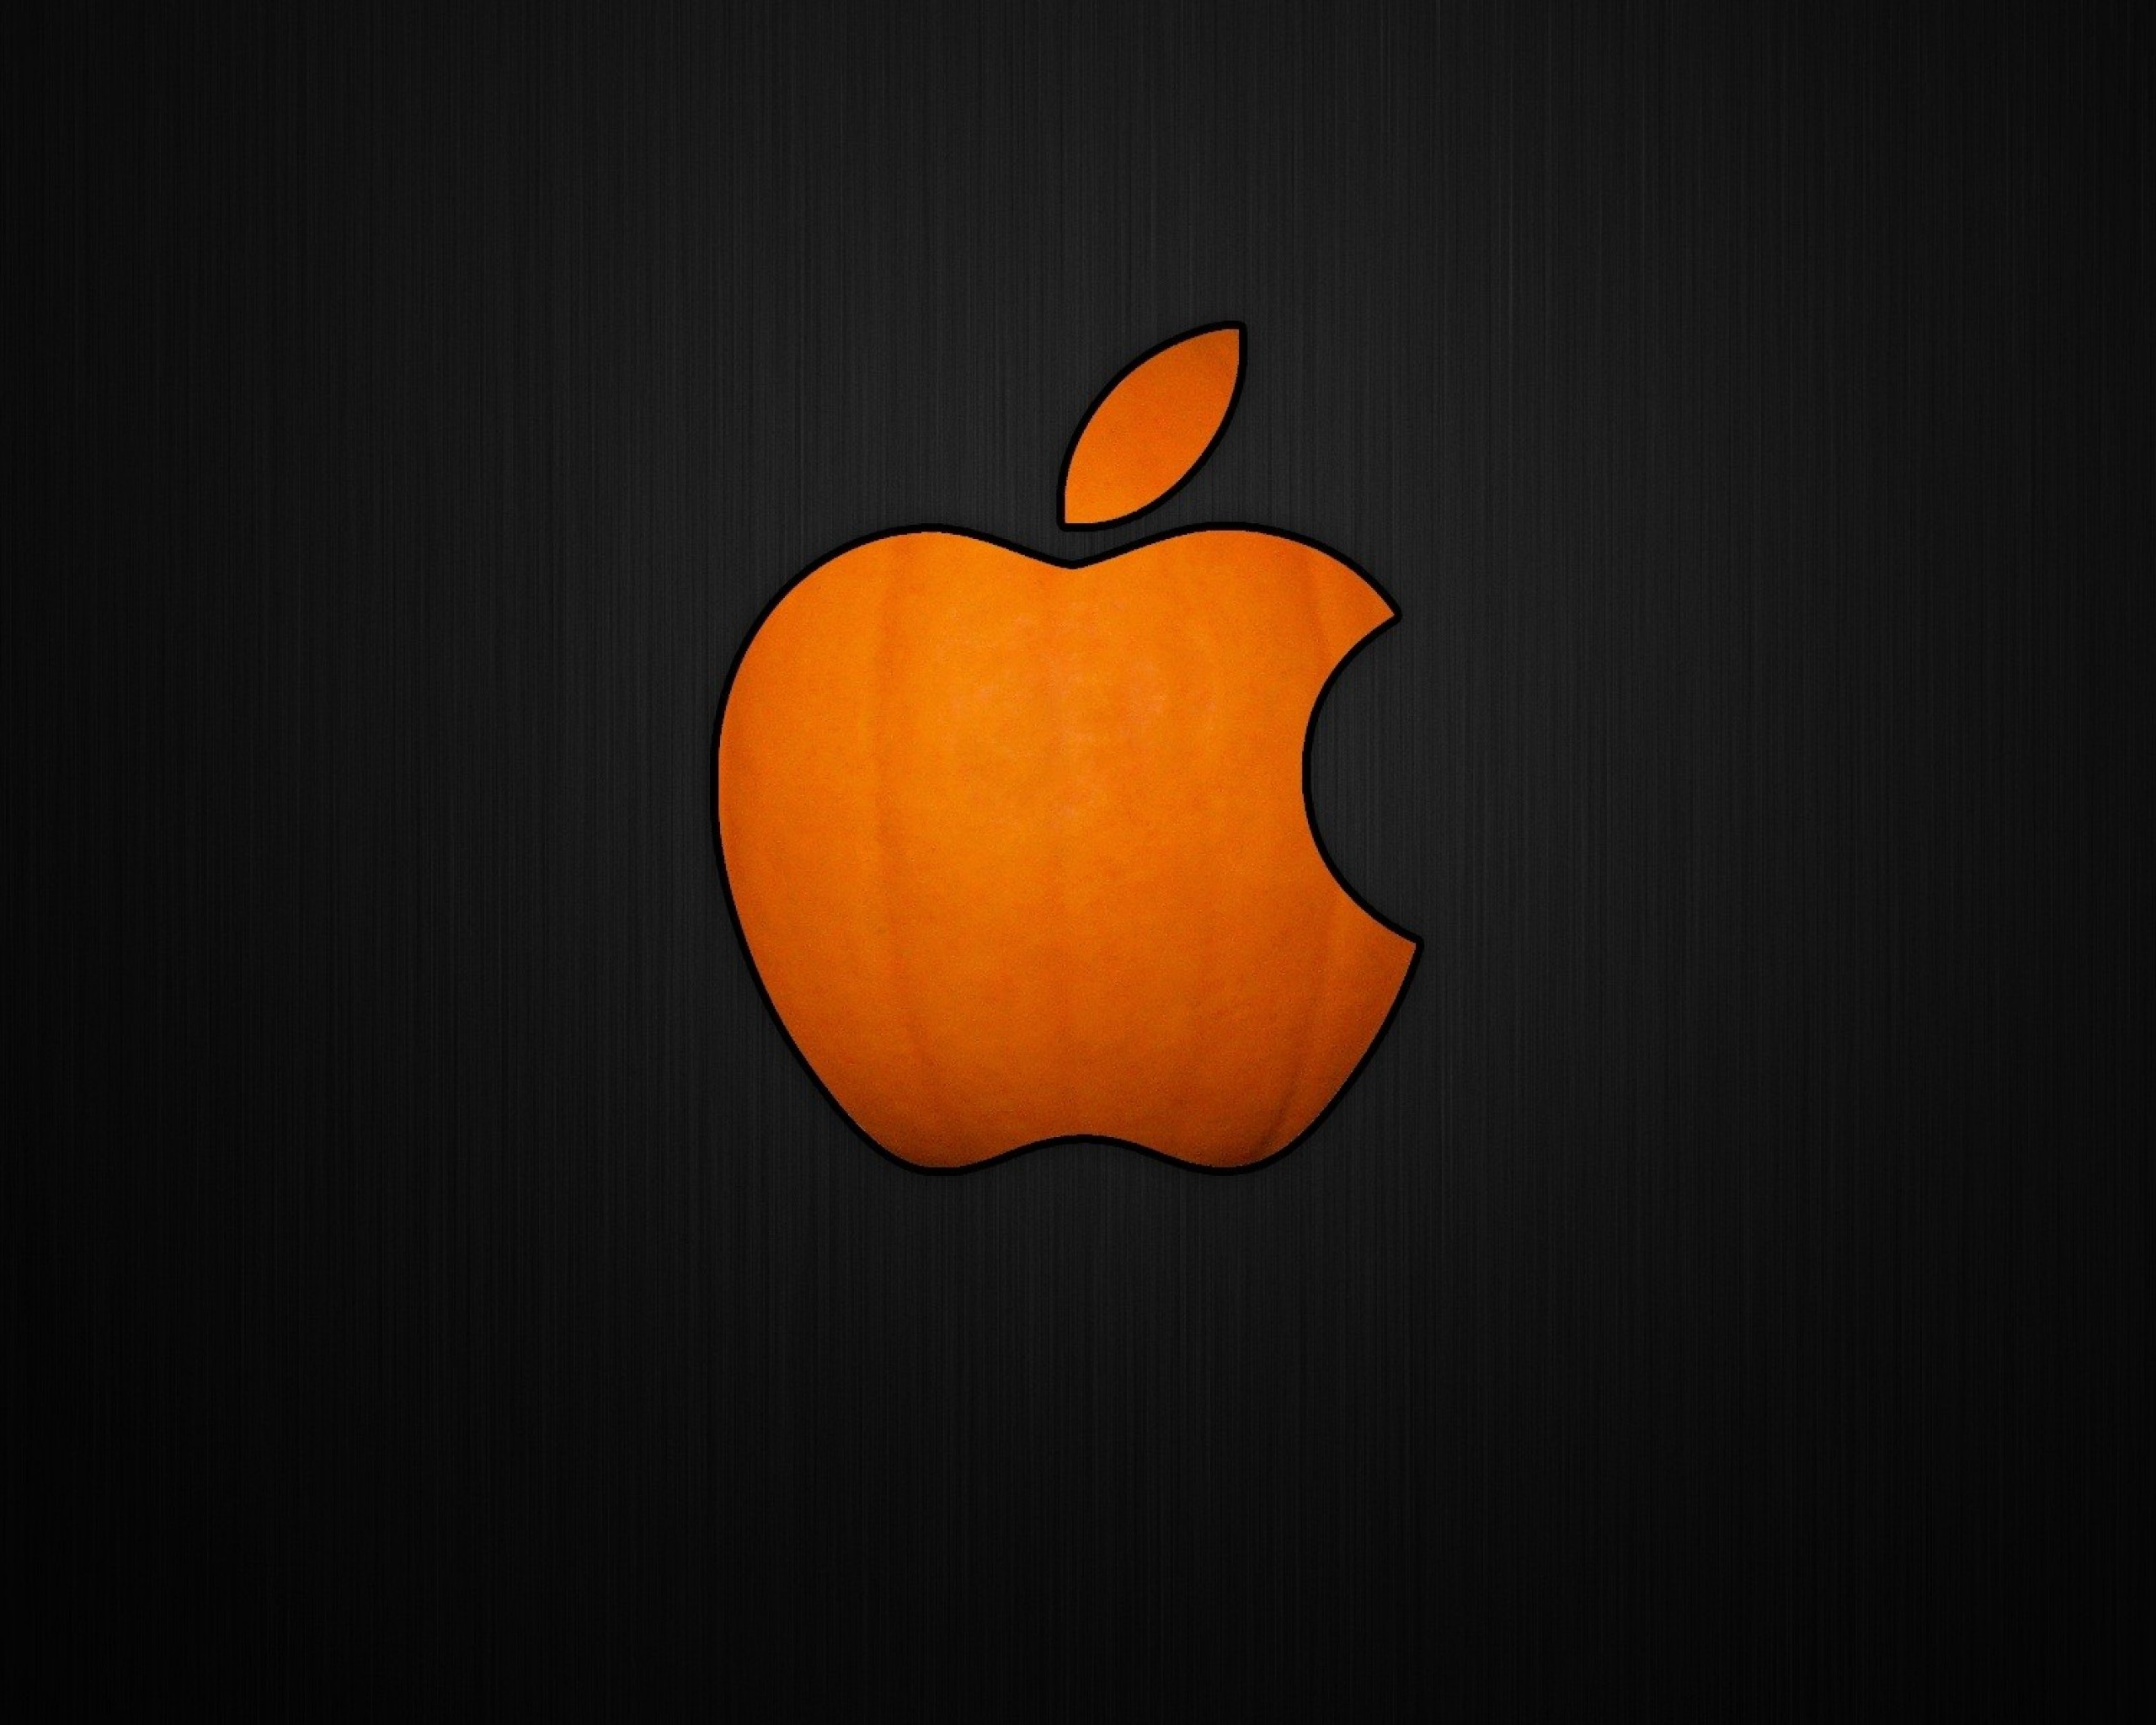 Apple Halloween Wallpaper2